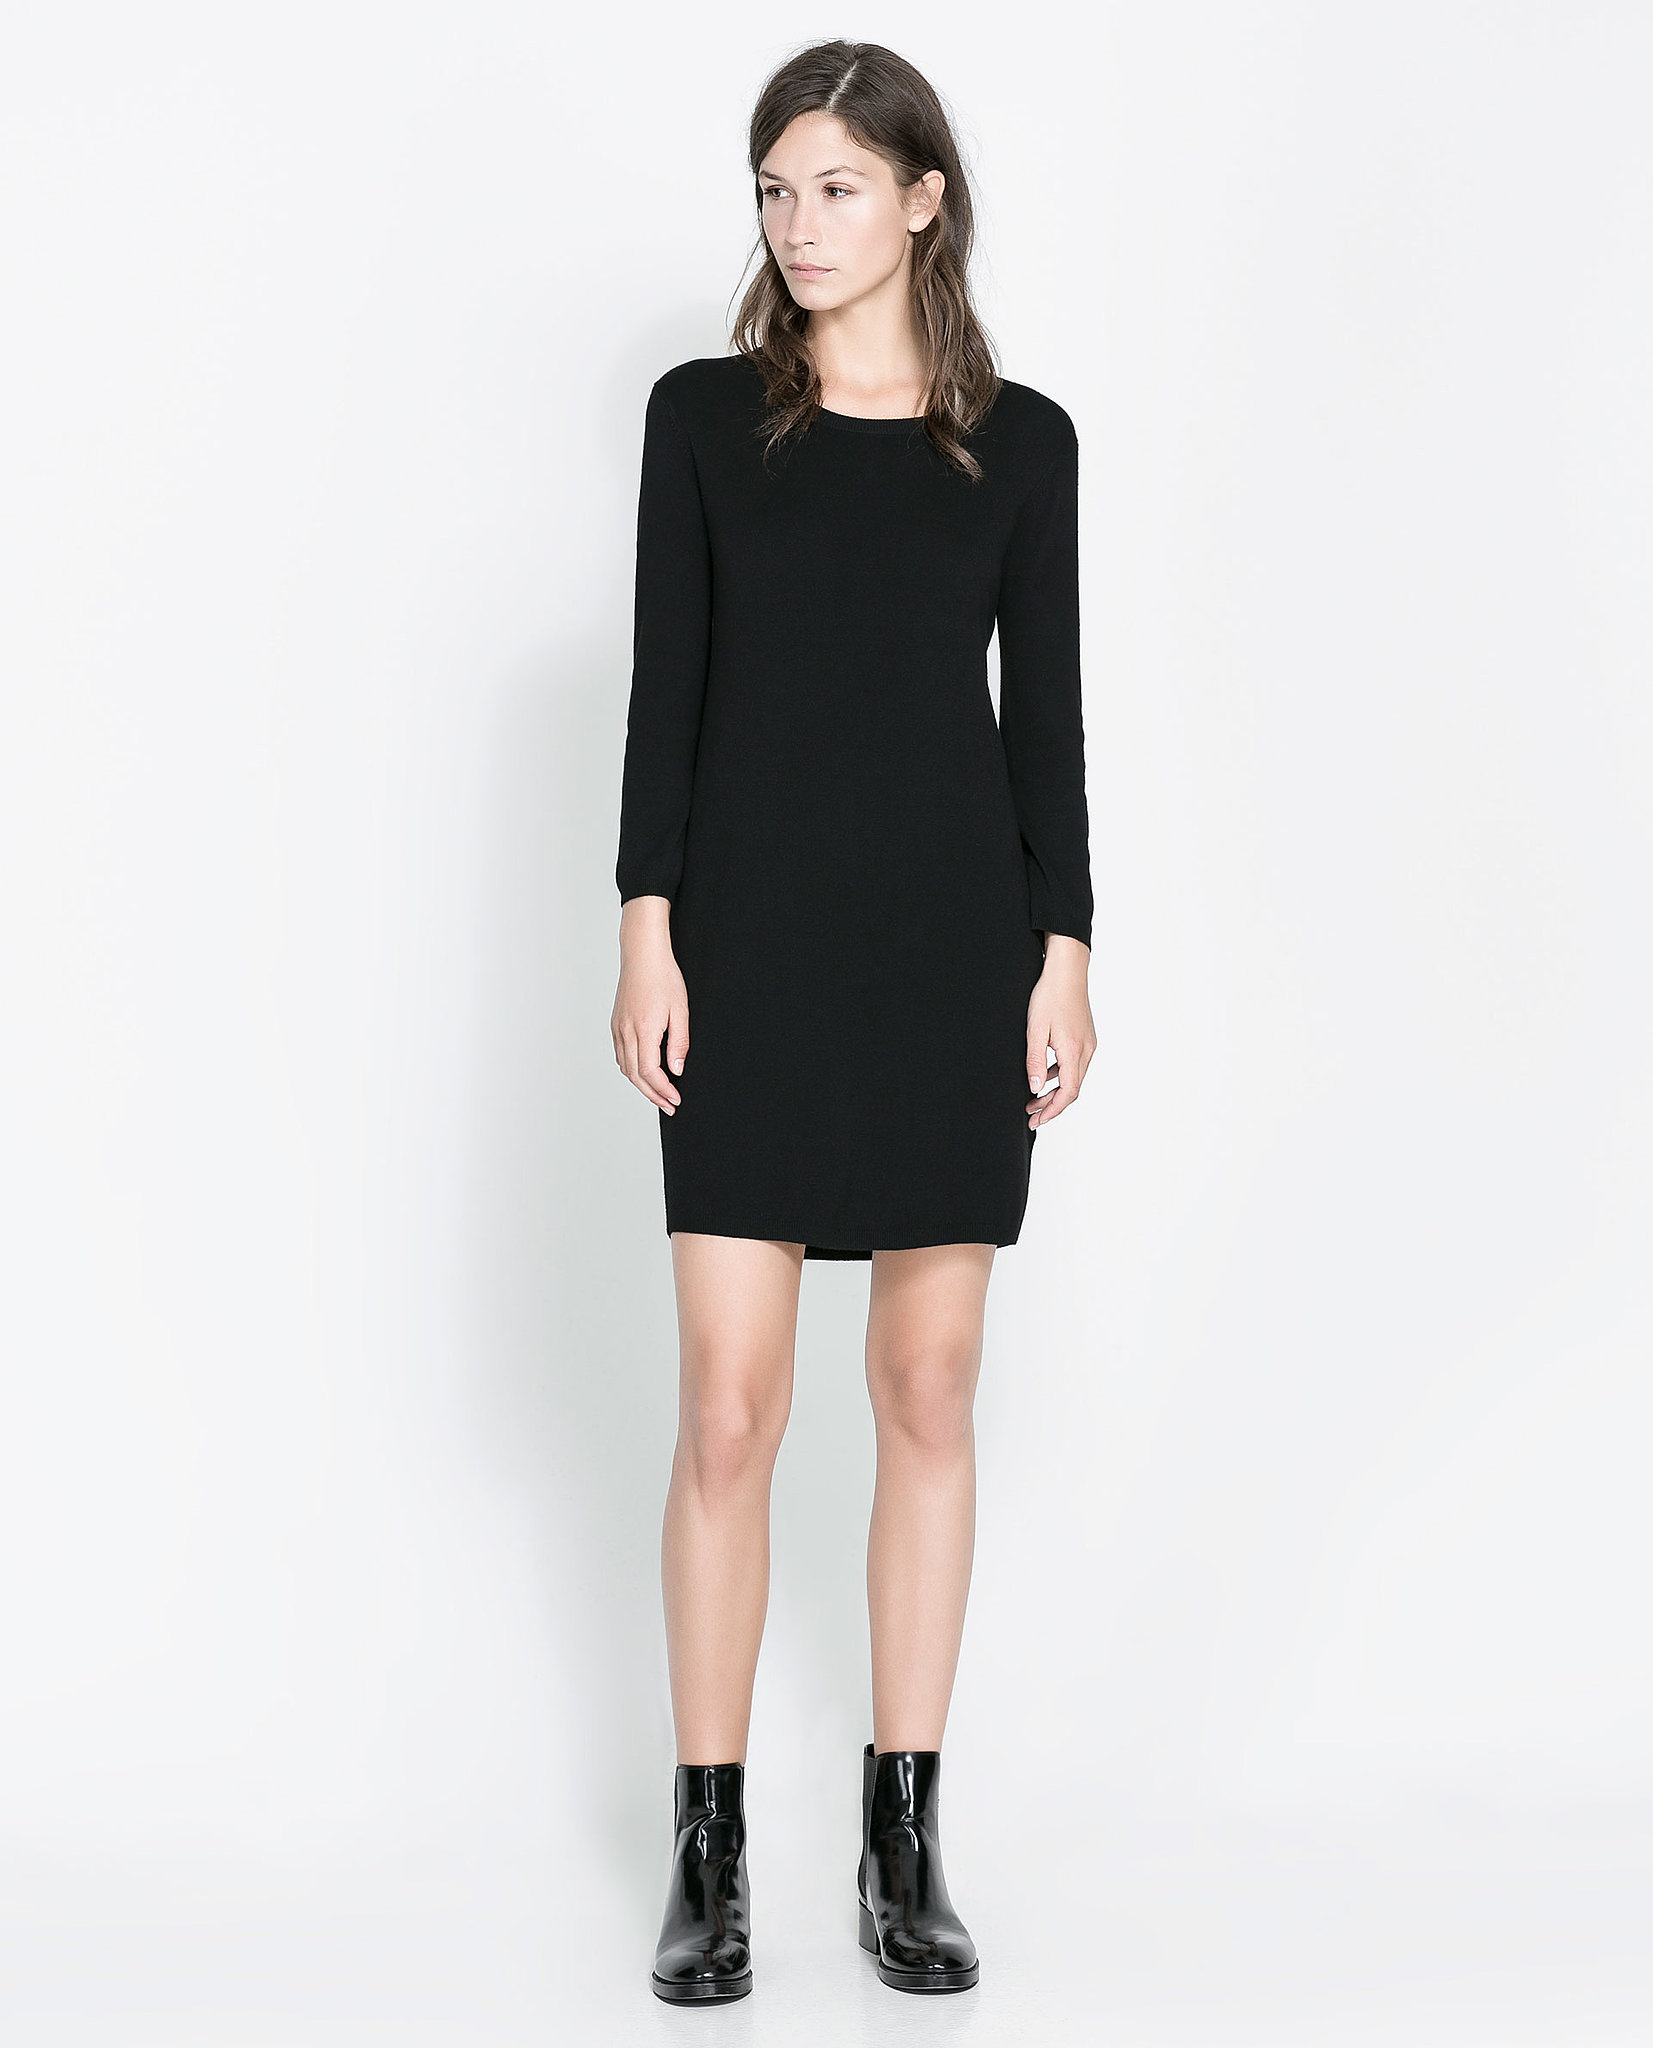 We consider Zara's zip-back dress ($50) a wardrobe essential.